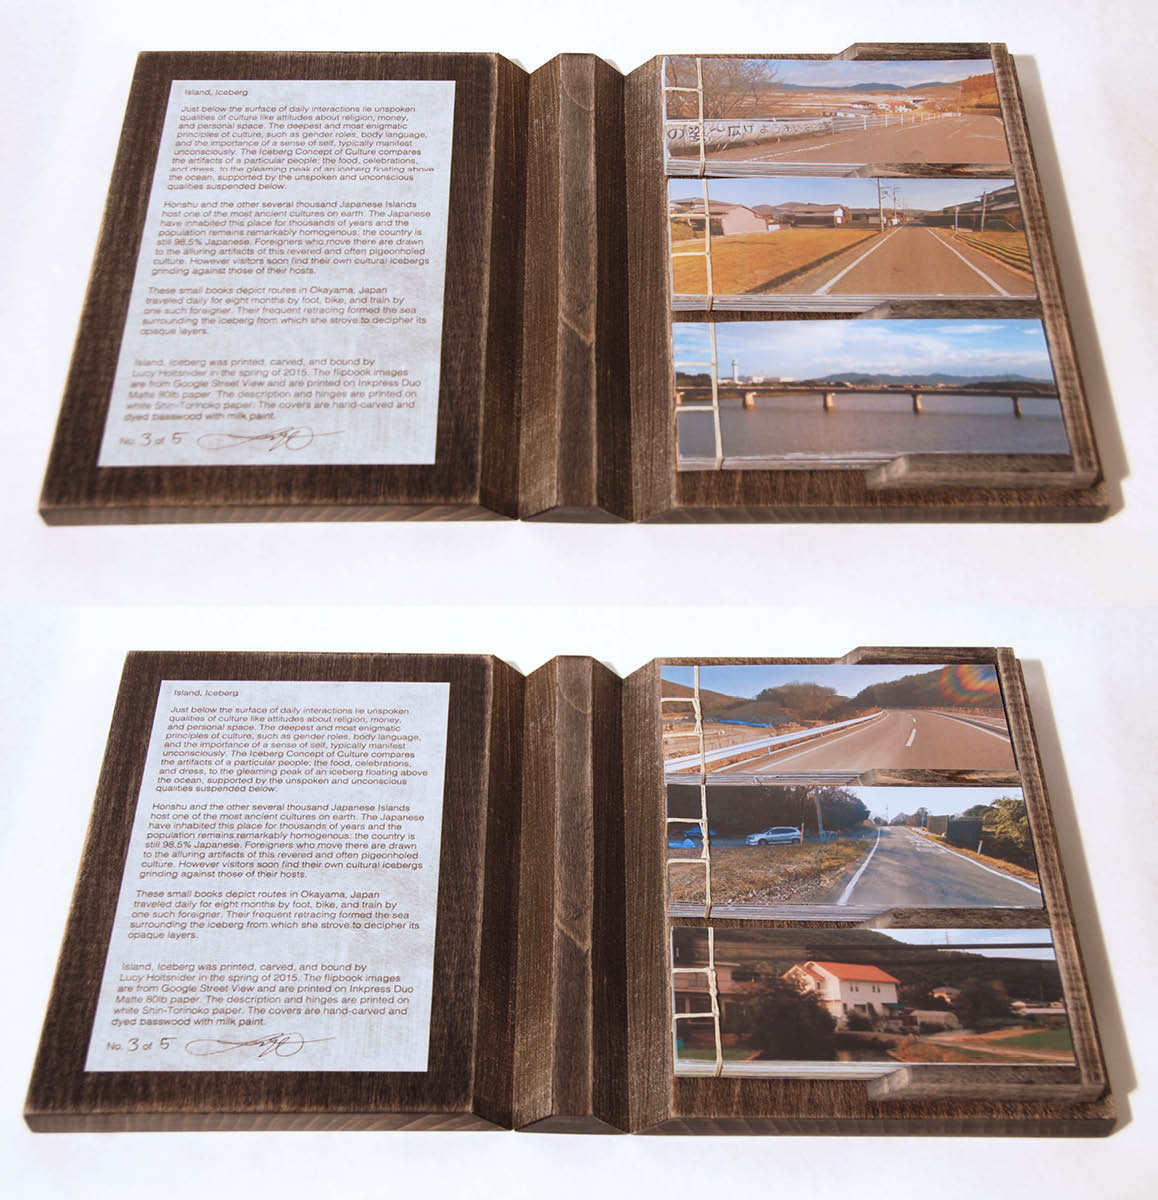 On top, flip books with side one facing up. Below, flip books with side two facing up. The letterpress printed description and colophon can be seen to the left.